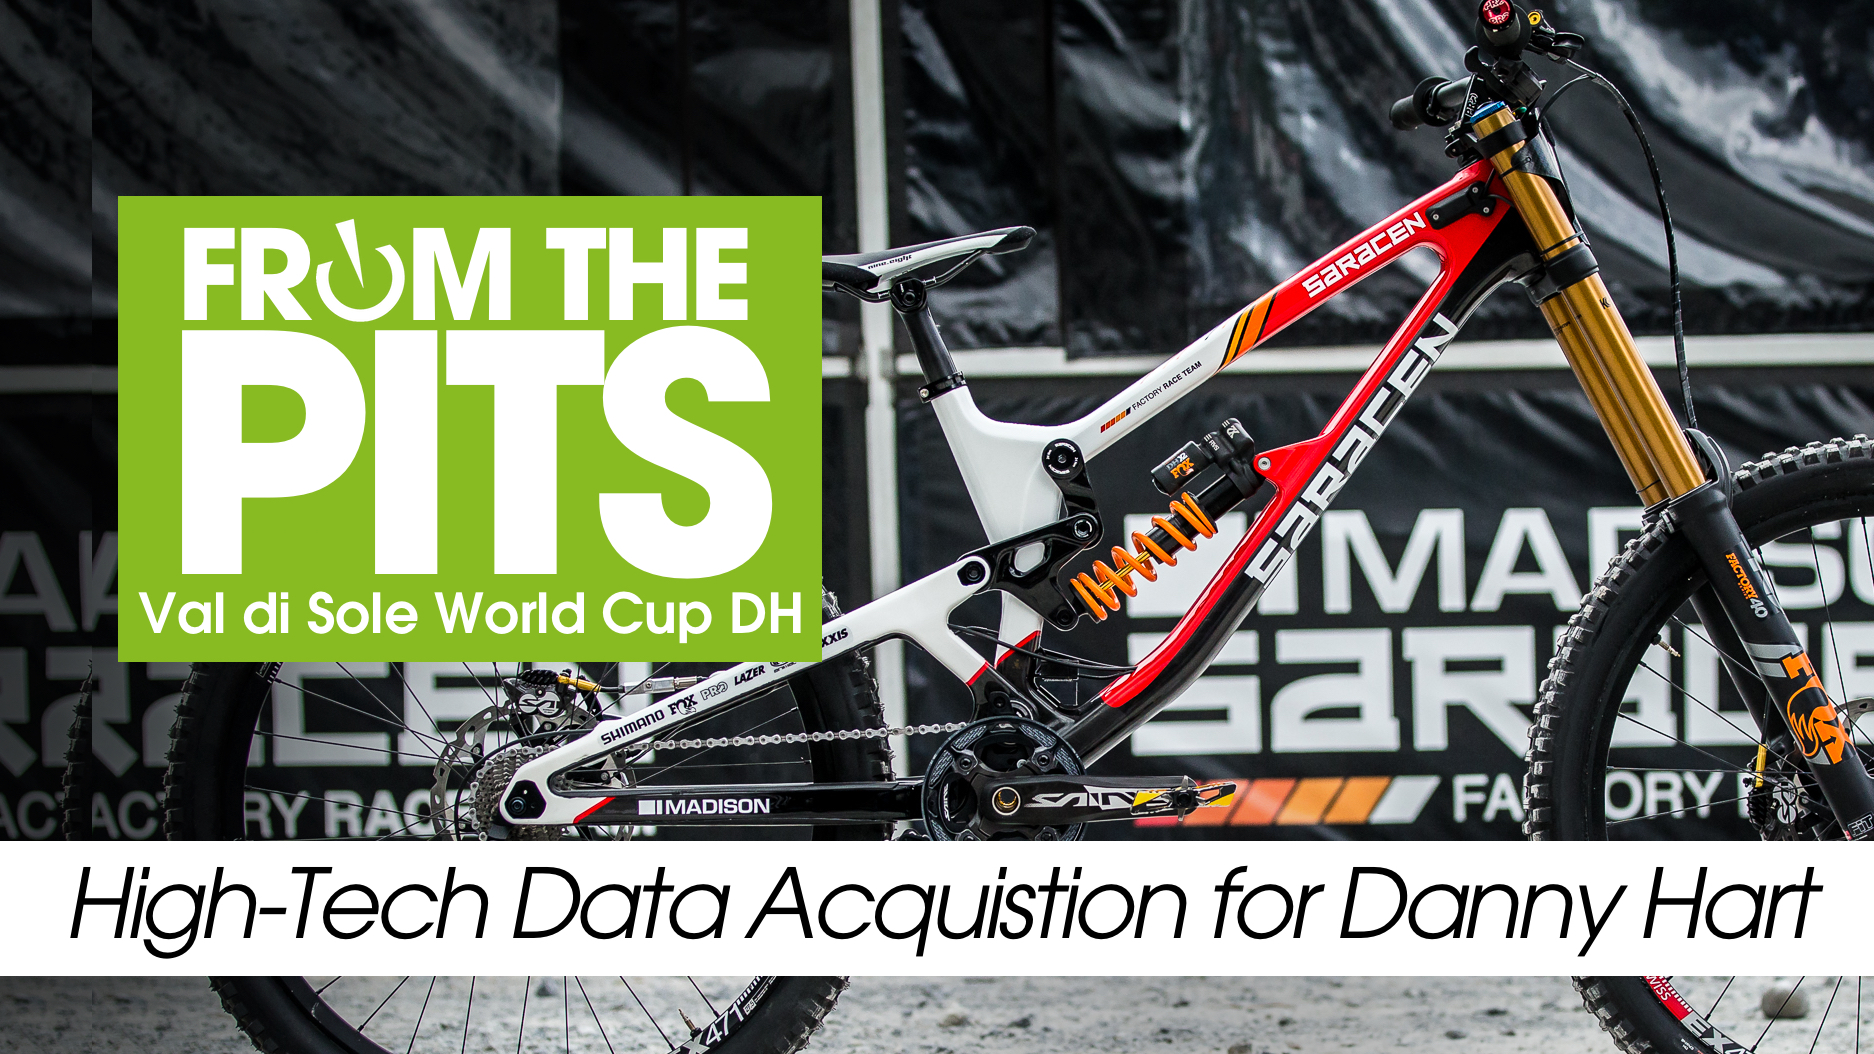 High-Tech Data Acquistion for Danny Hart - From the Pits at Val di Sole